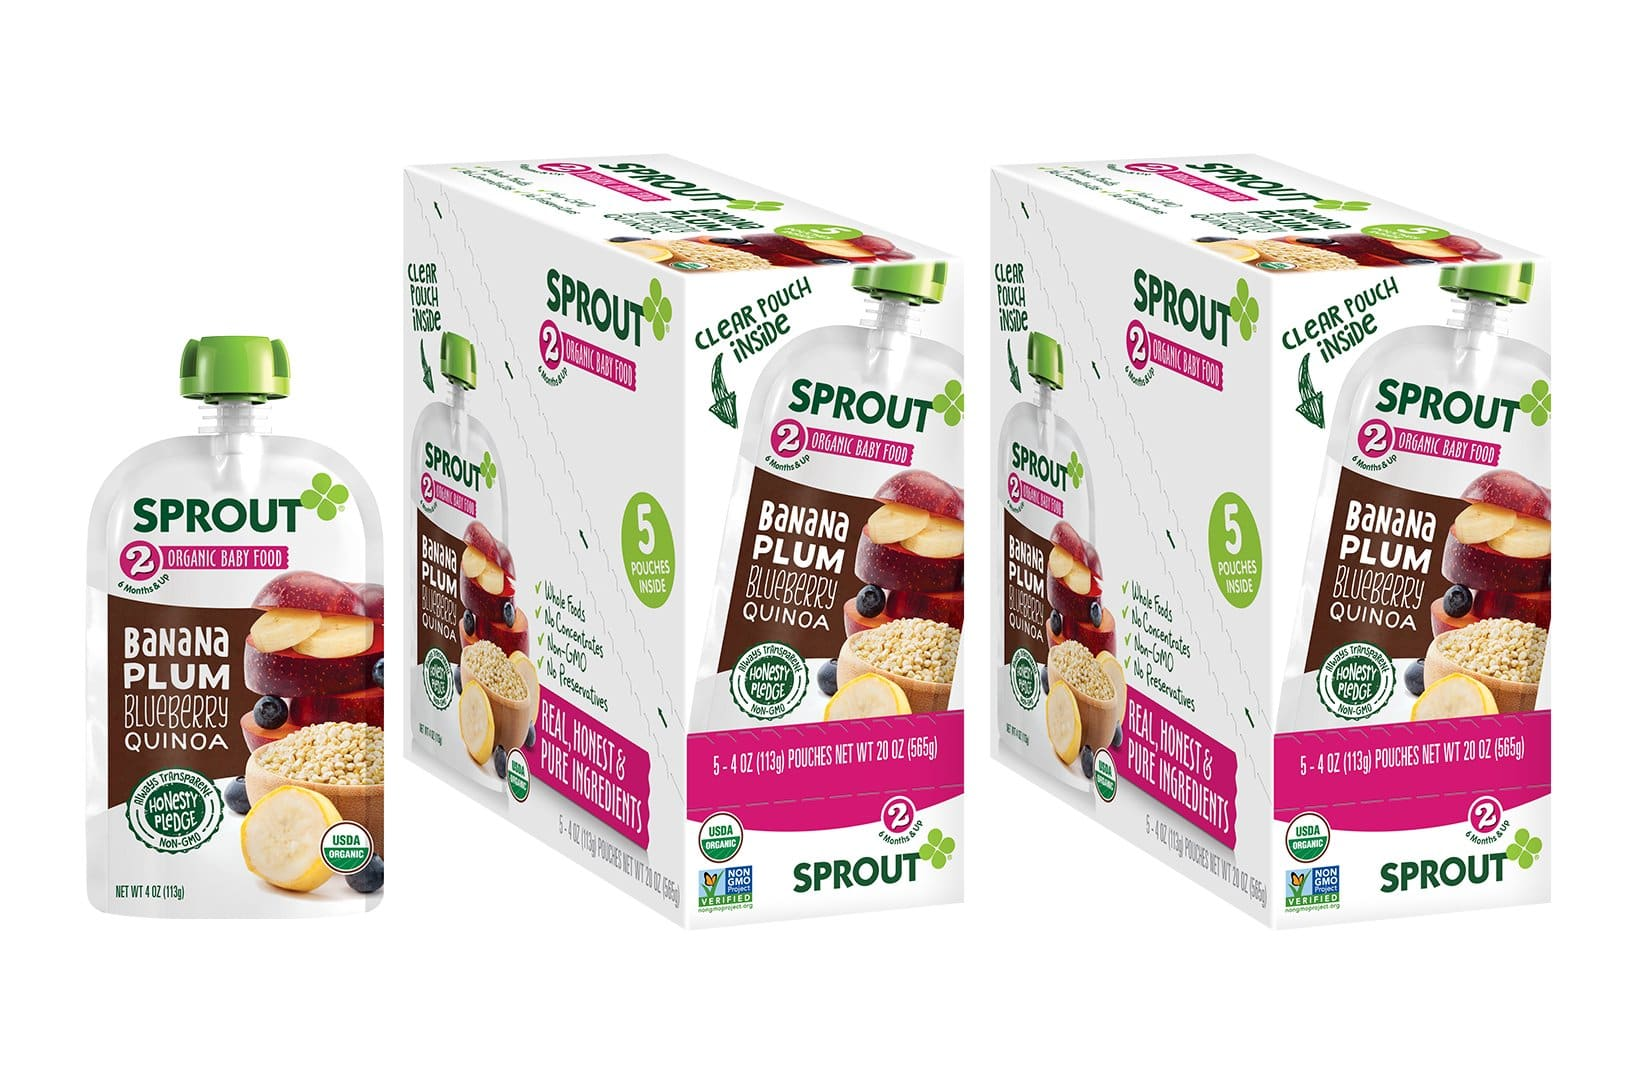 Sprout Organic Baby Food Pouches Stage 2 & 3, 10-12 pack for $6.61-$8.99 after S&S